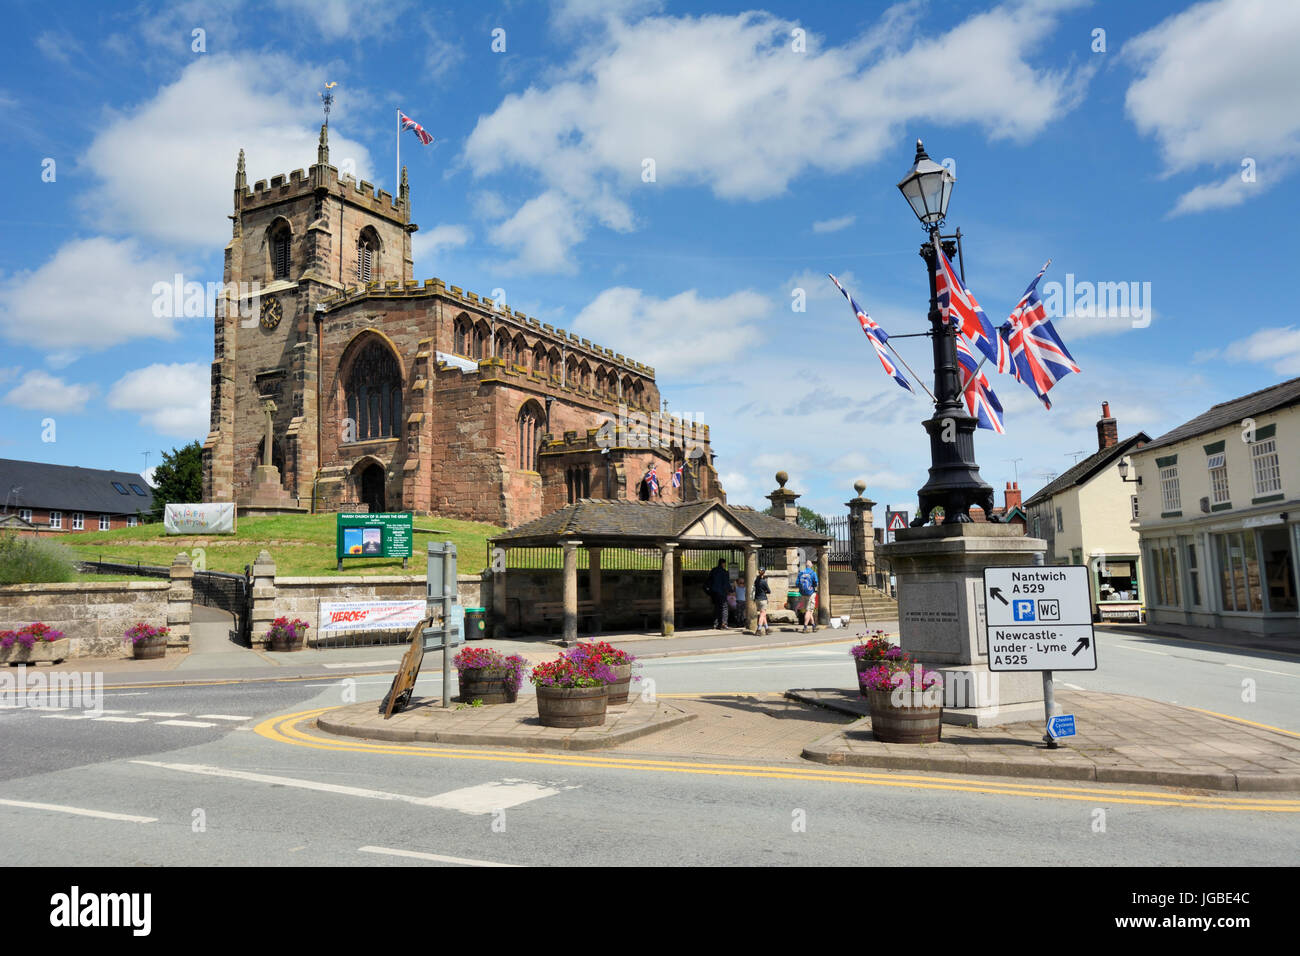 St. James church in the Cheshire town of Audlem close to the Shropshire border. The Shropshire Union canal passes - Stock Image